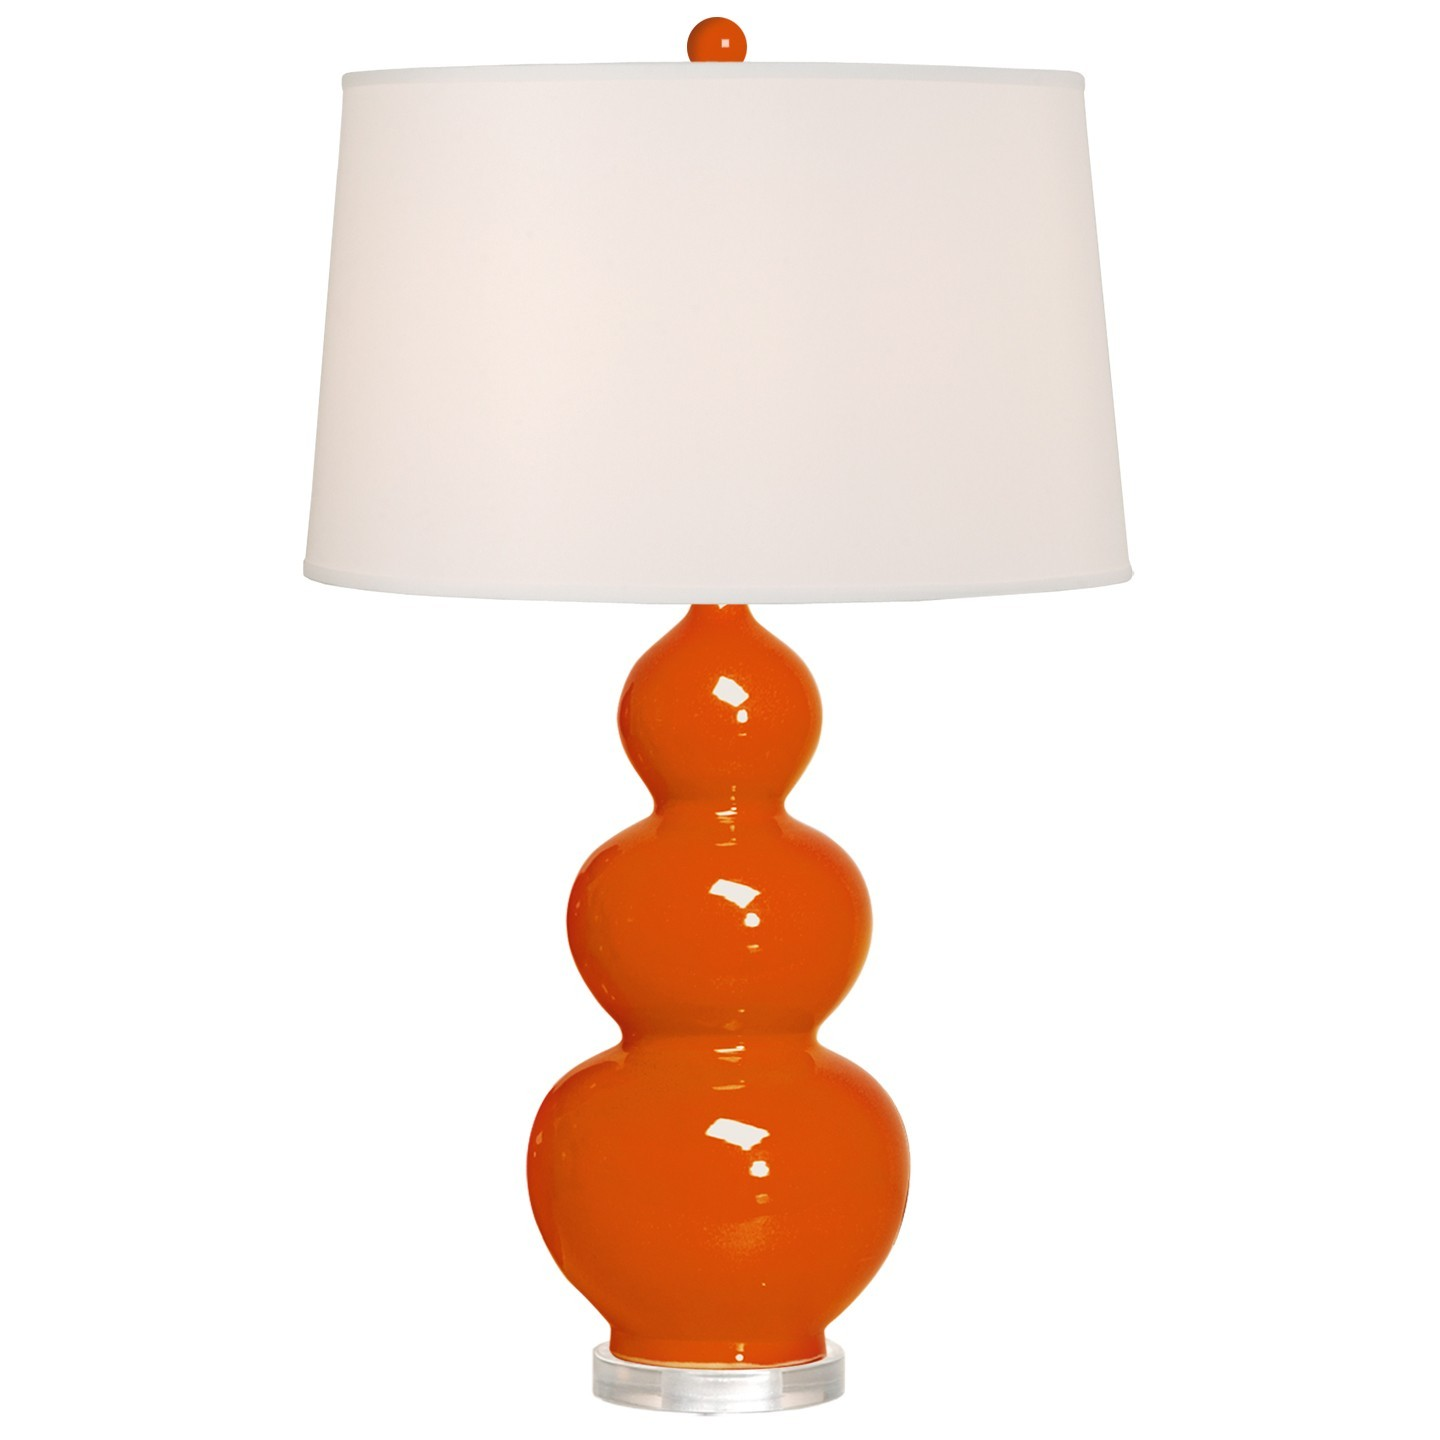 triple_gourd_vase_lamp_in_red_white_shade